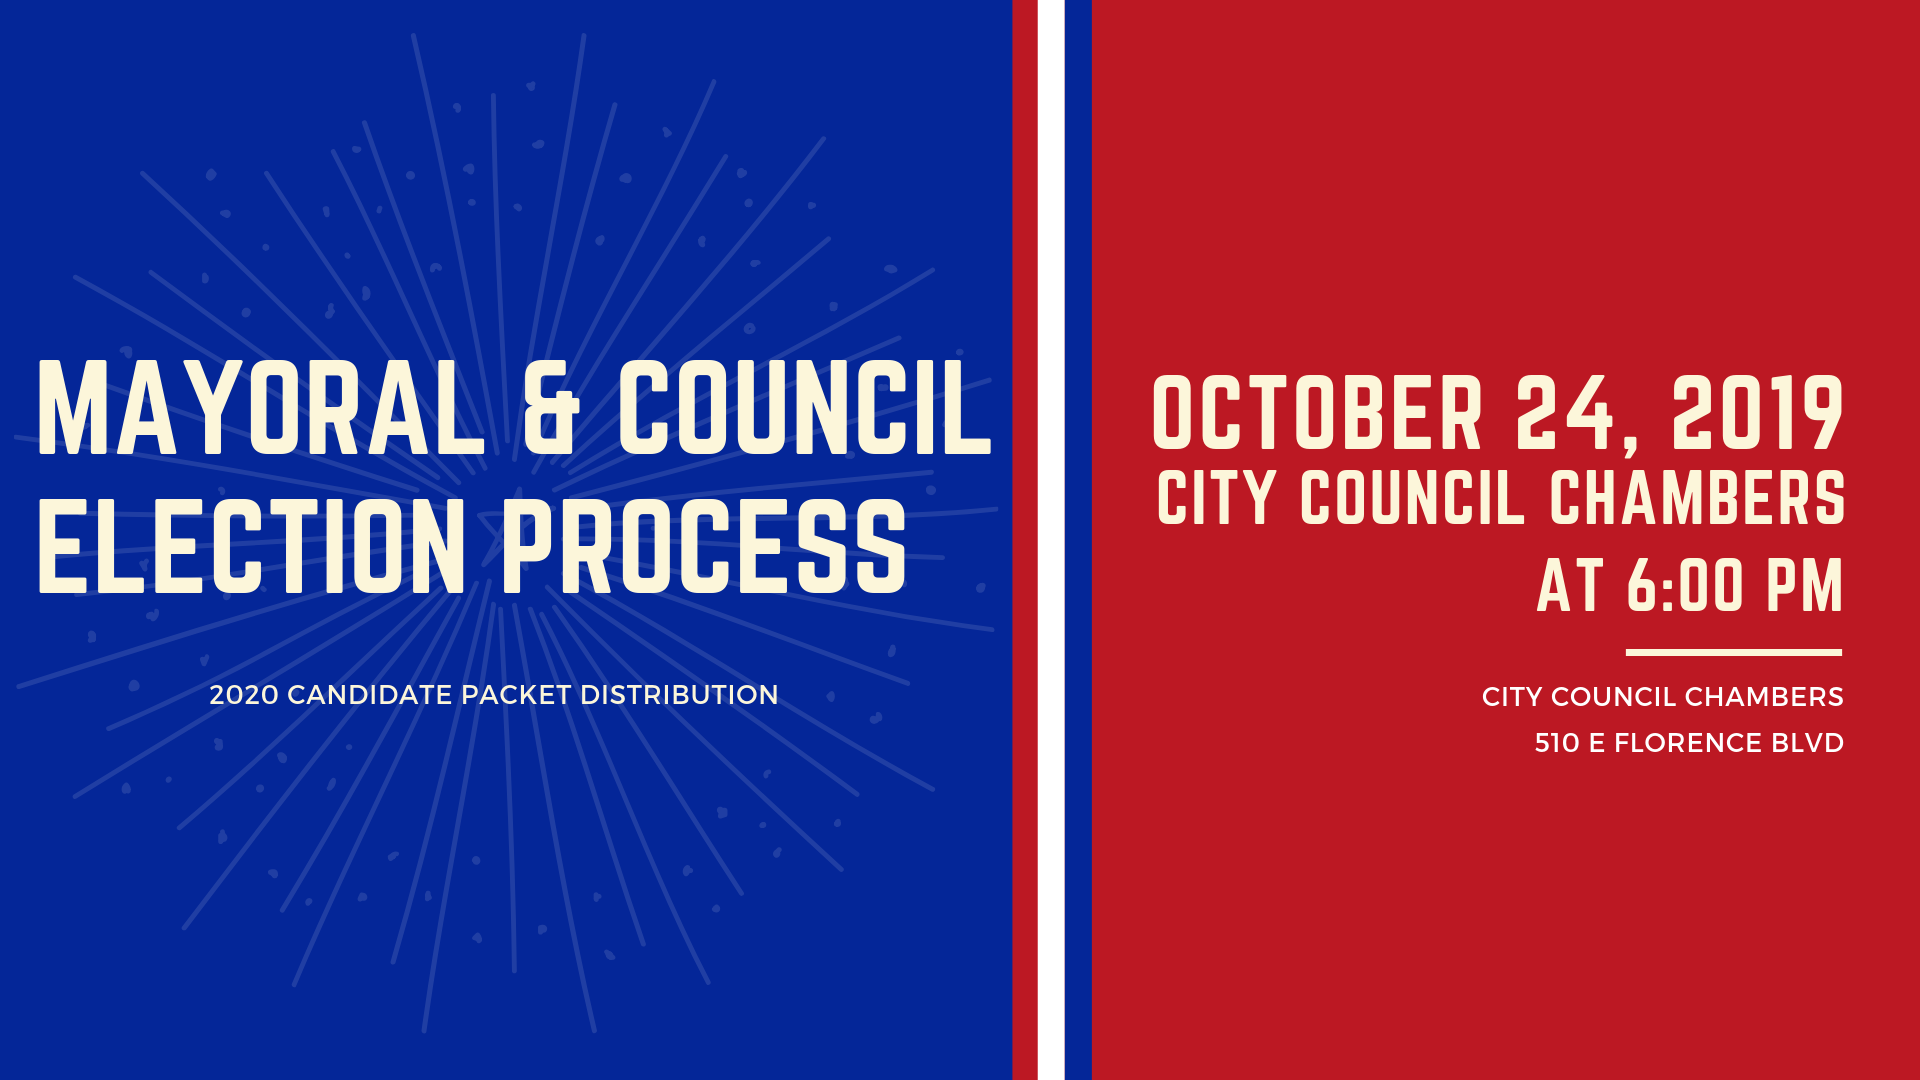 Mayoral and Council Election Process